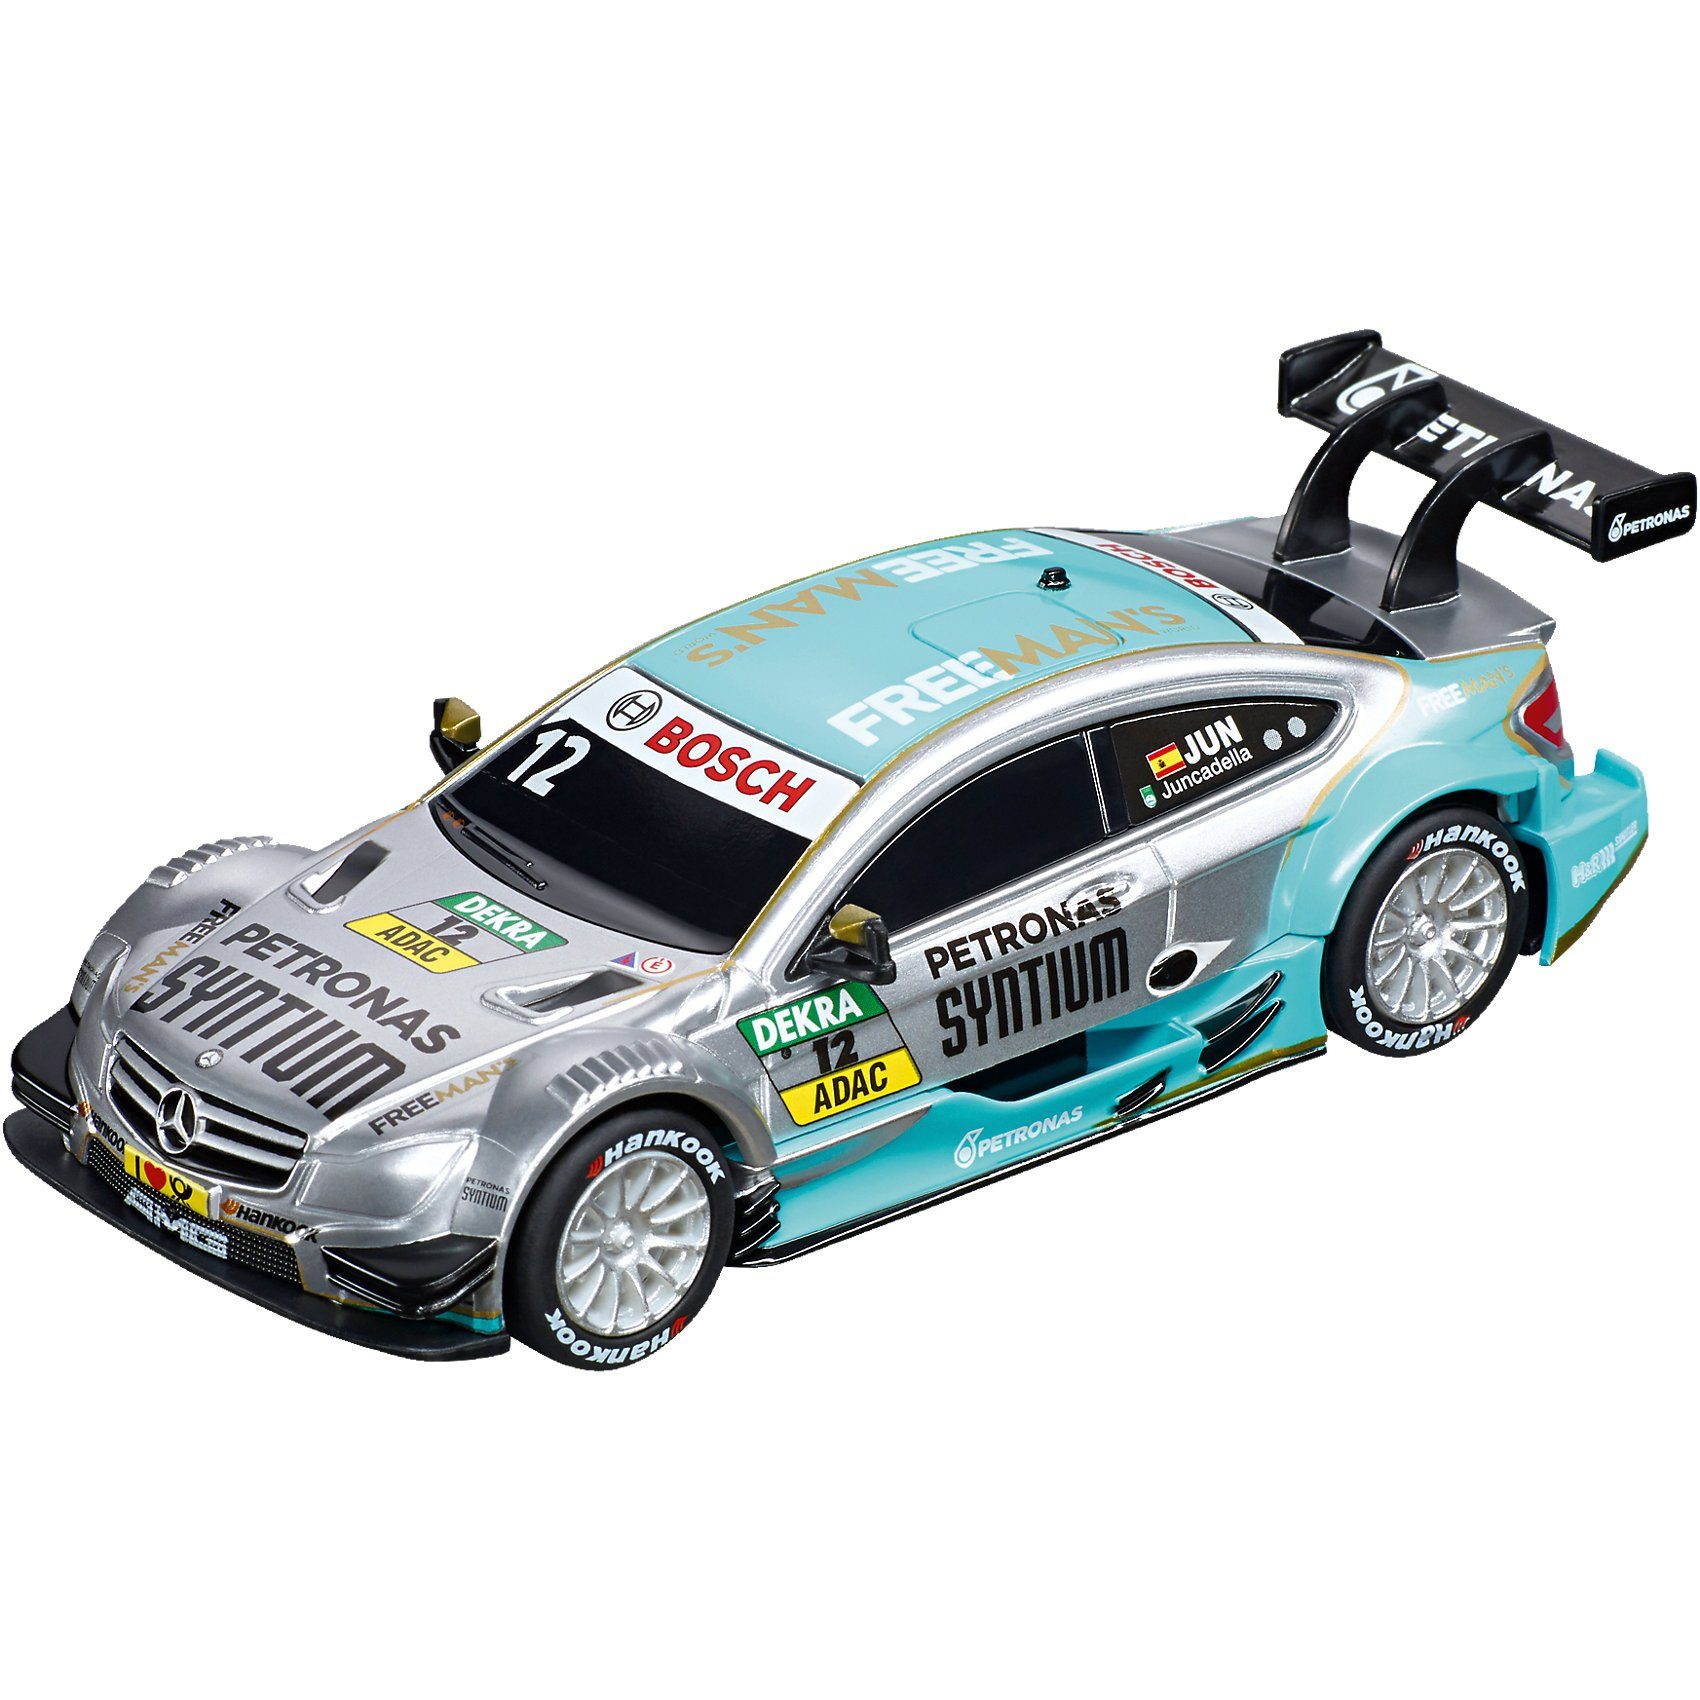 "Carrera Digital 143 41390 Amg Mercedes C-Coupe DTM ""D.Juncadella, N"